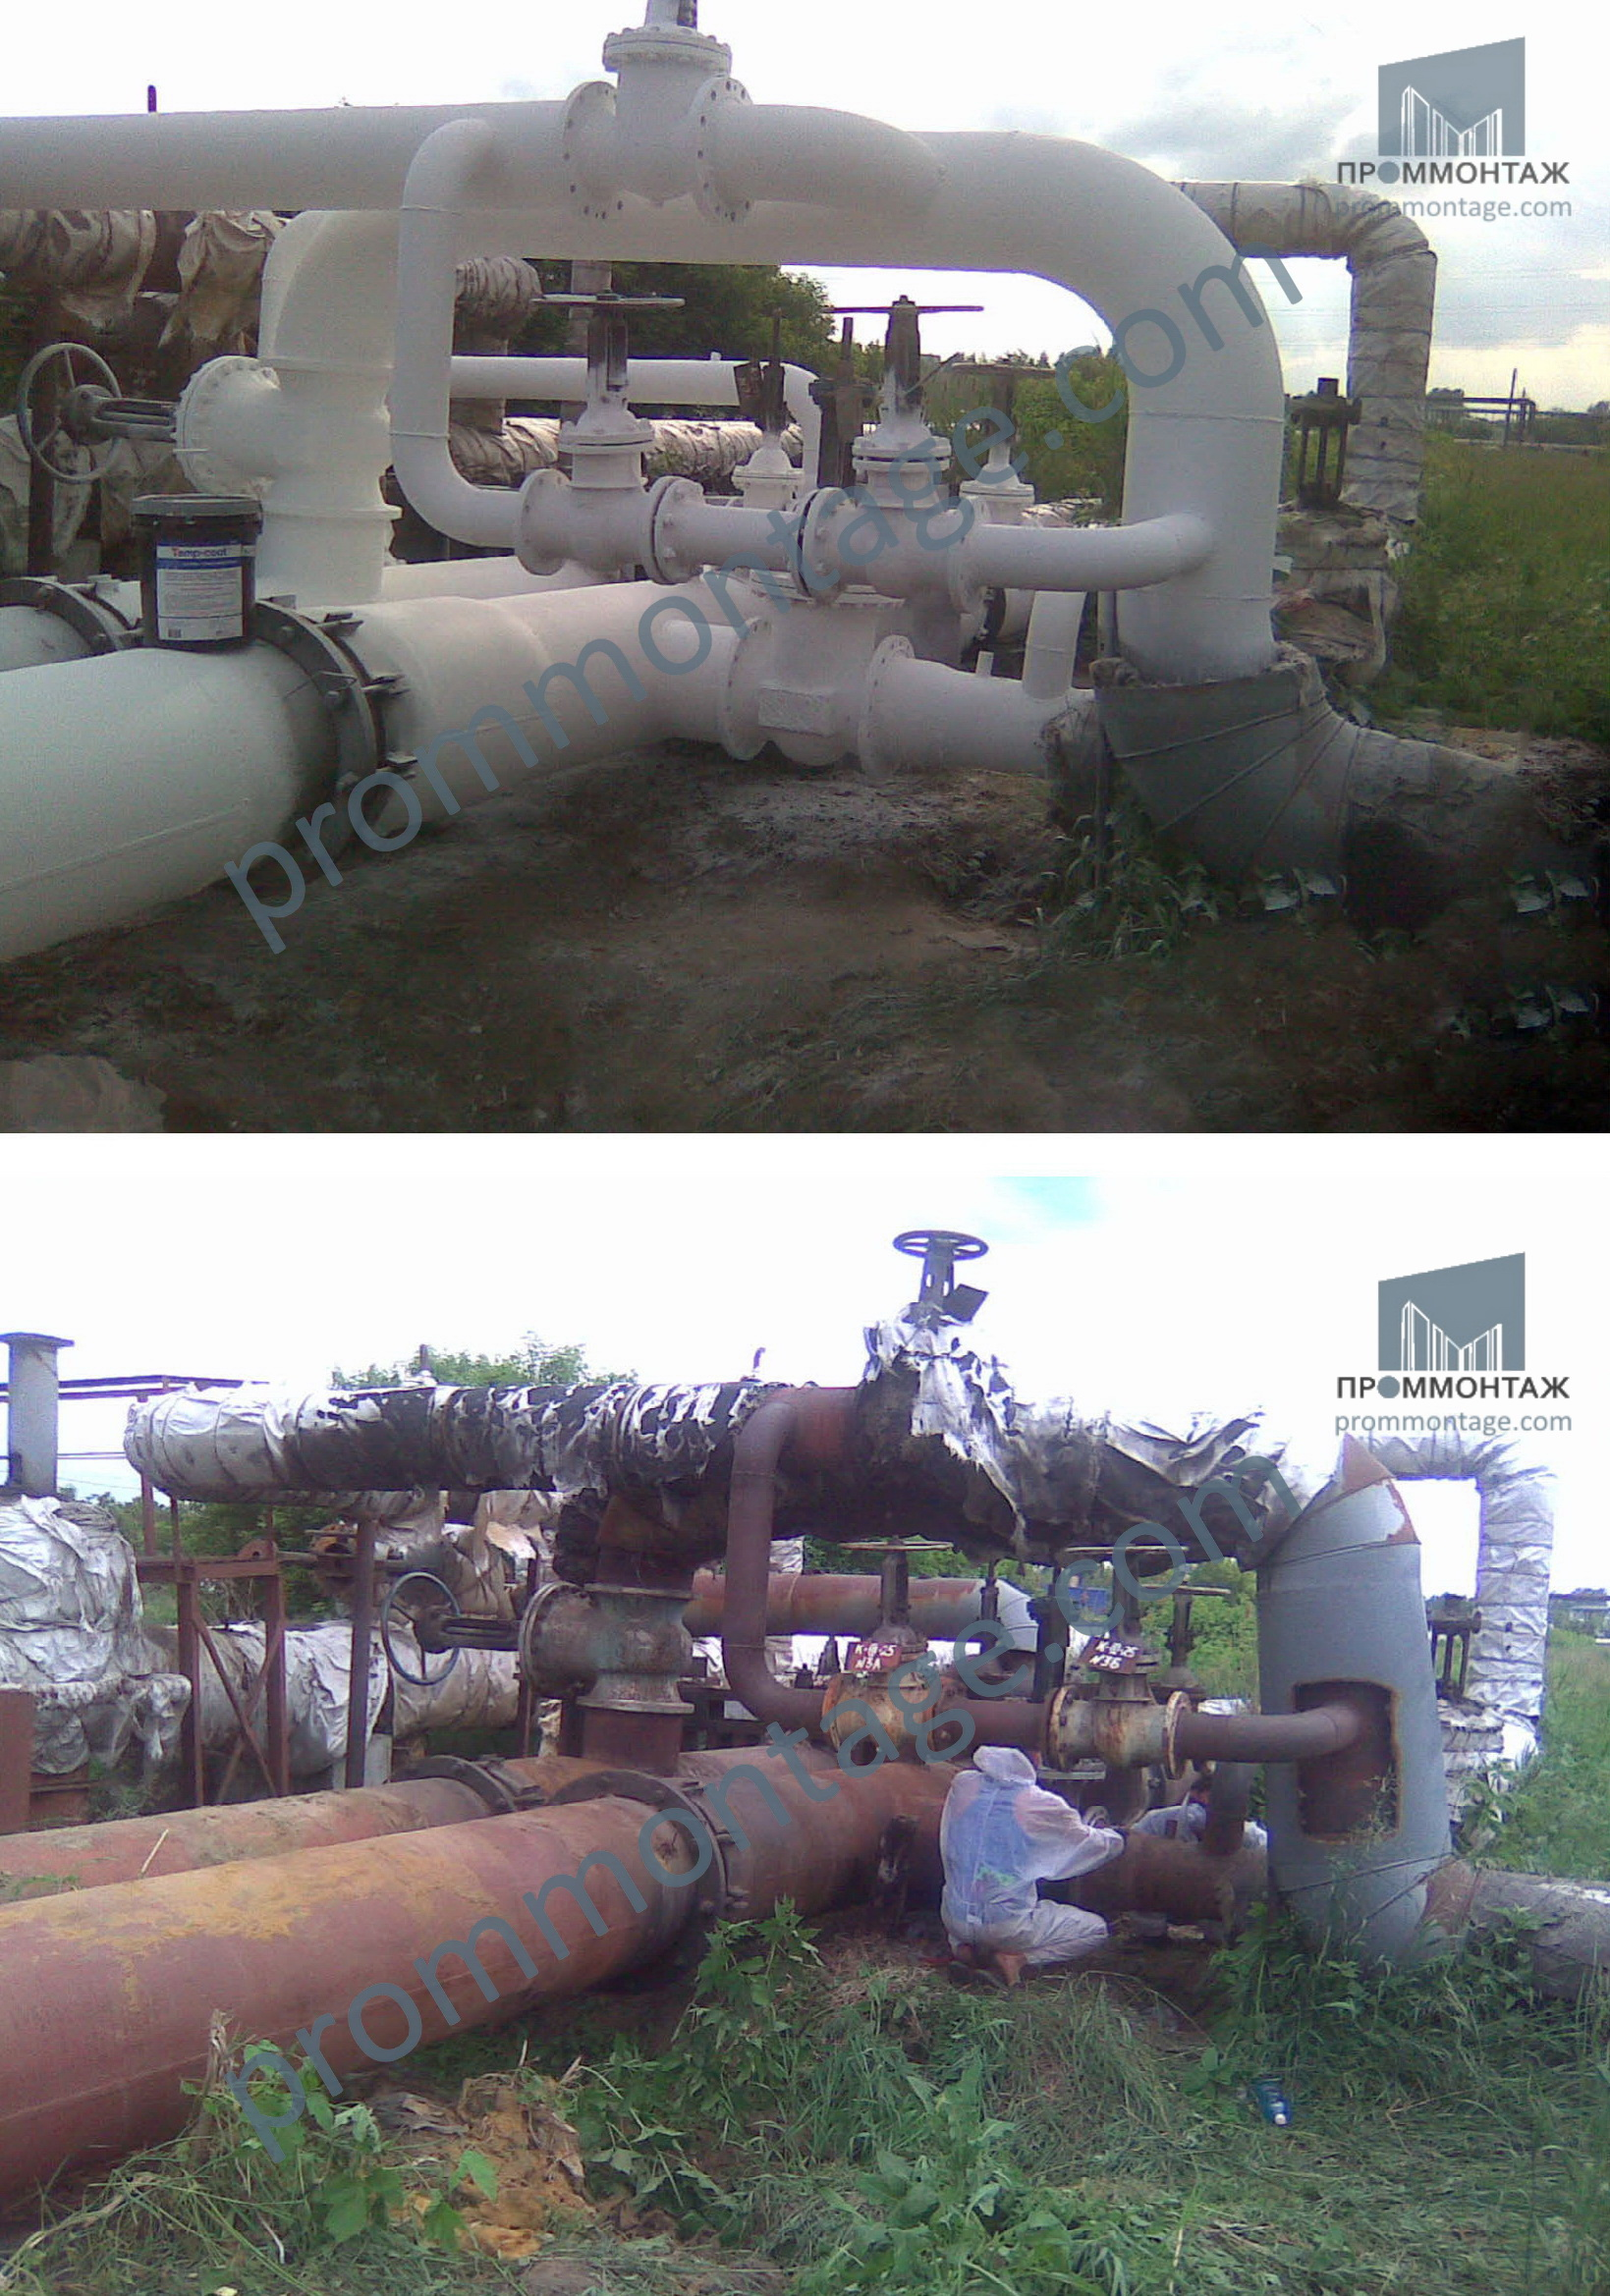 TEMP-COAT prommontage com pipelines 03-w